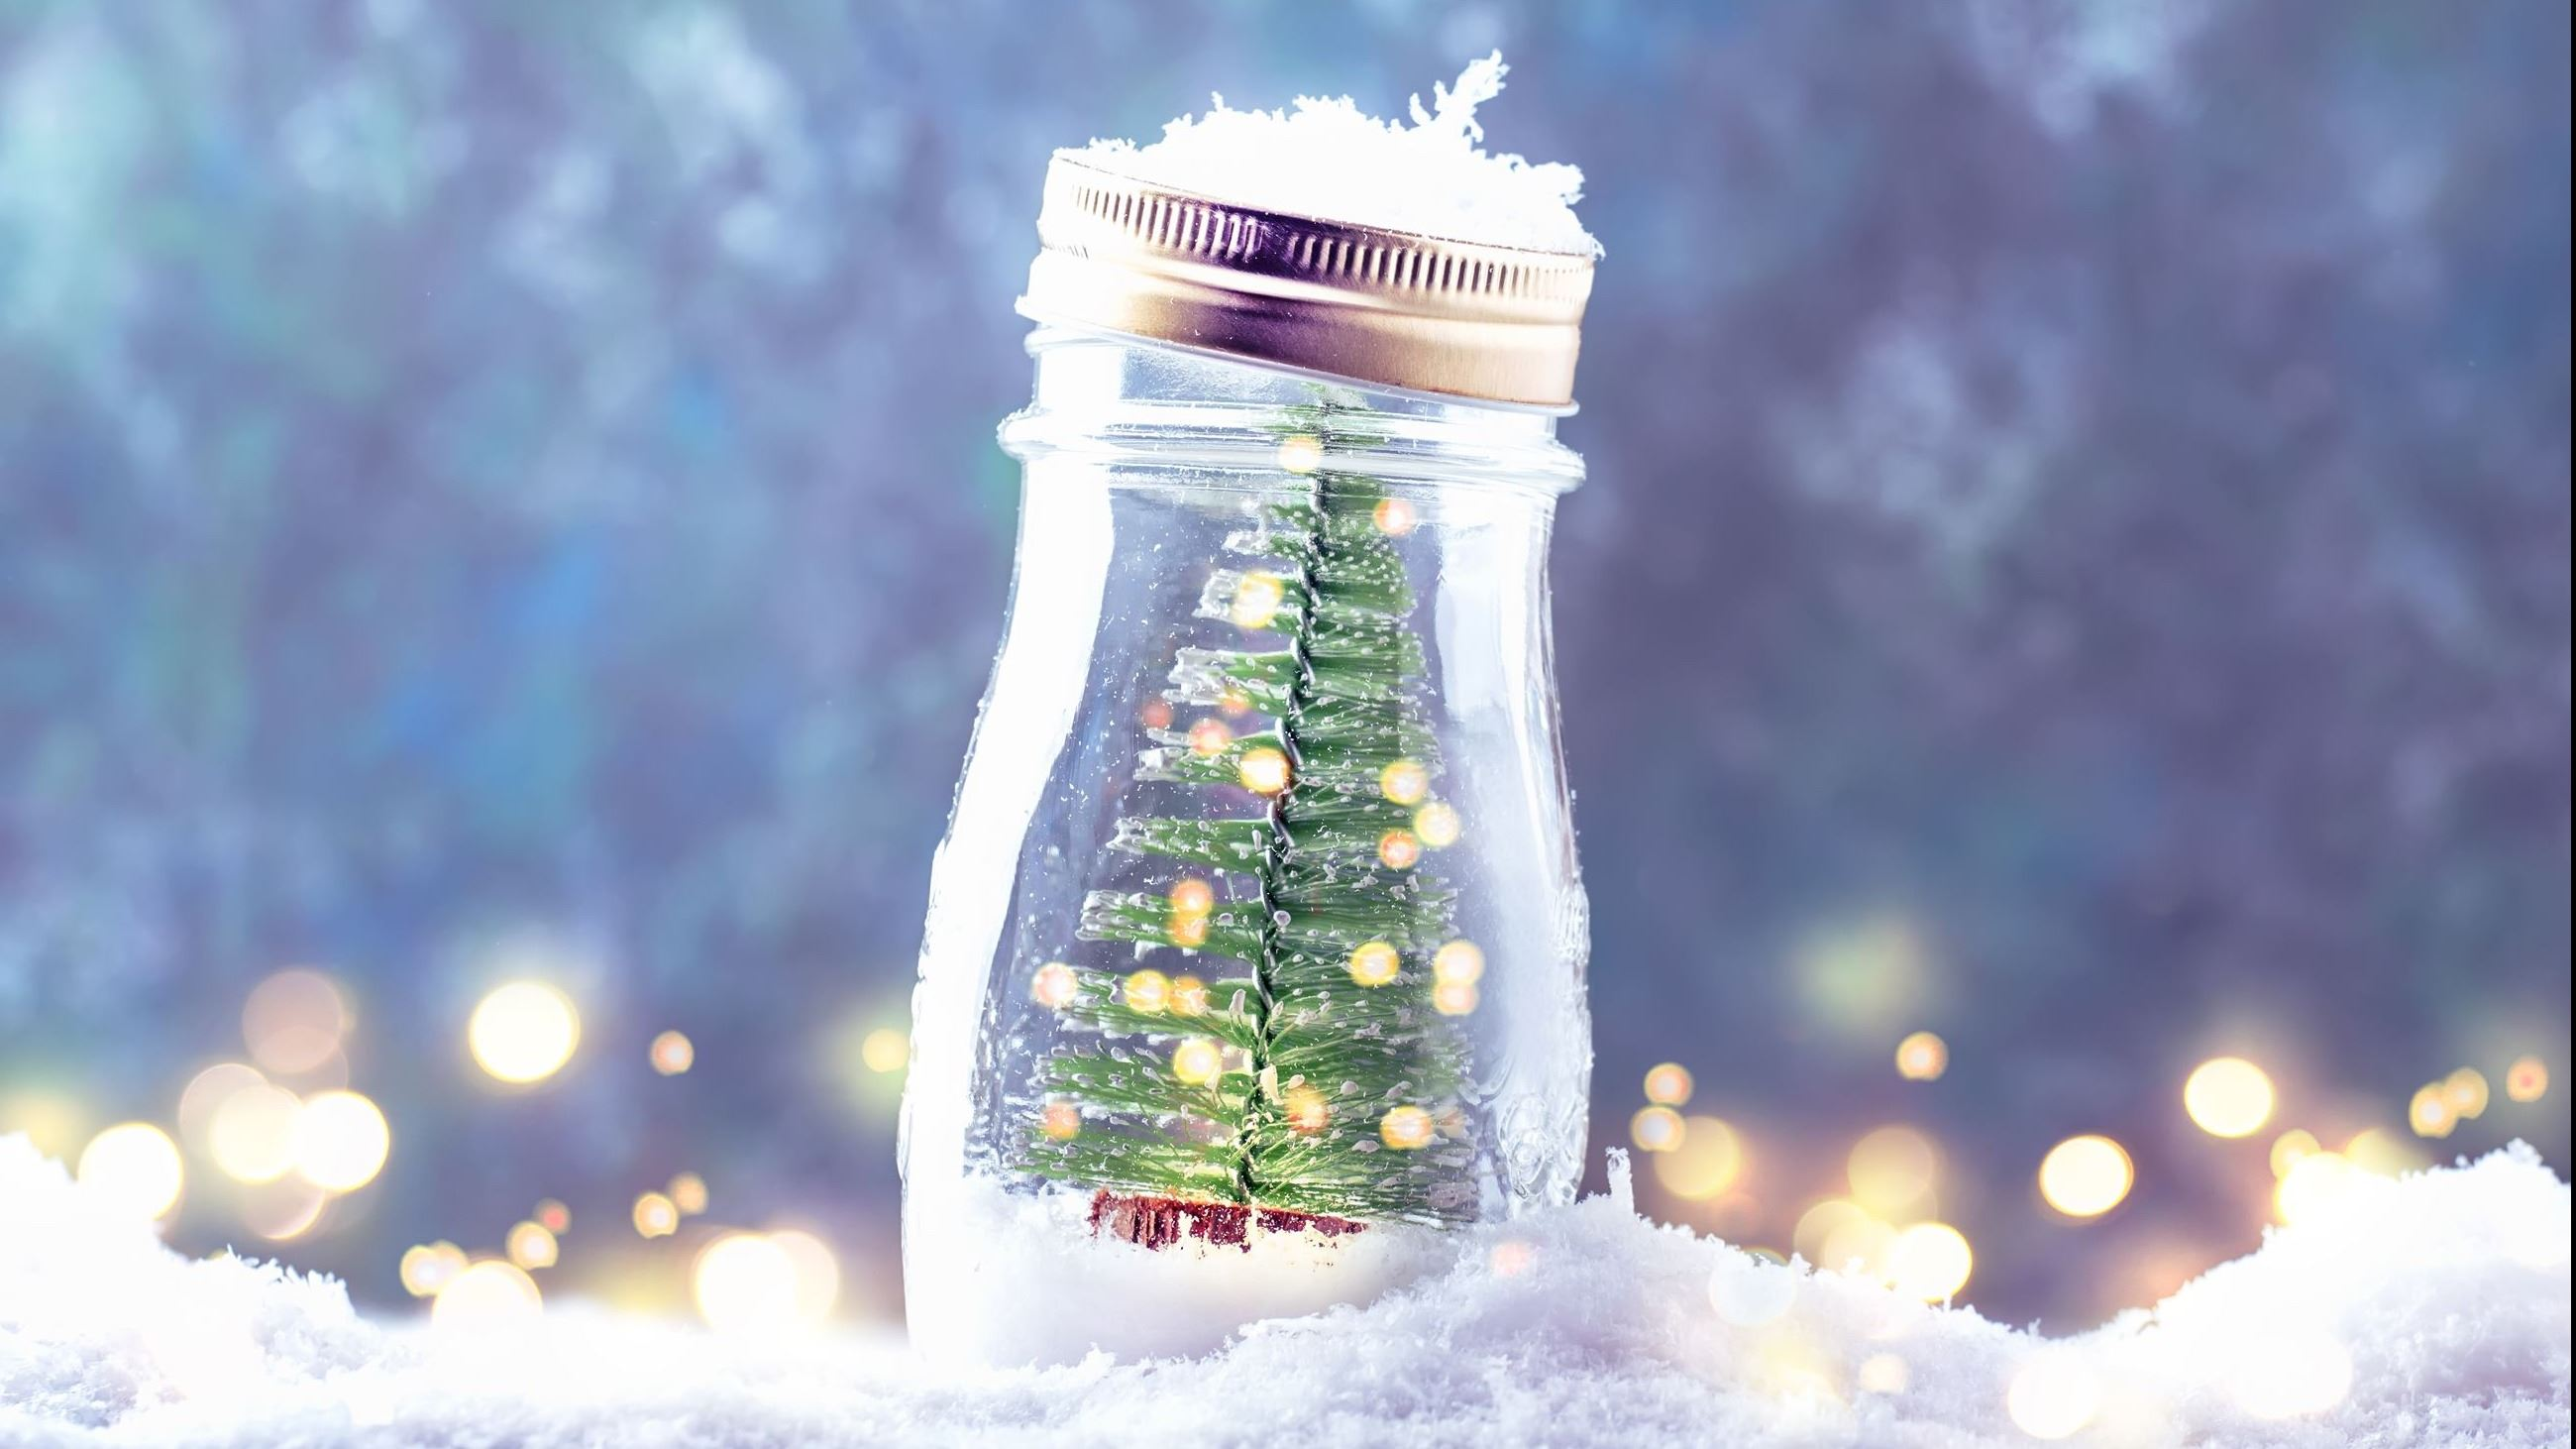 Evergreen tree in a jar sitting in the snow